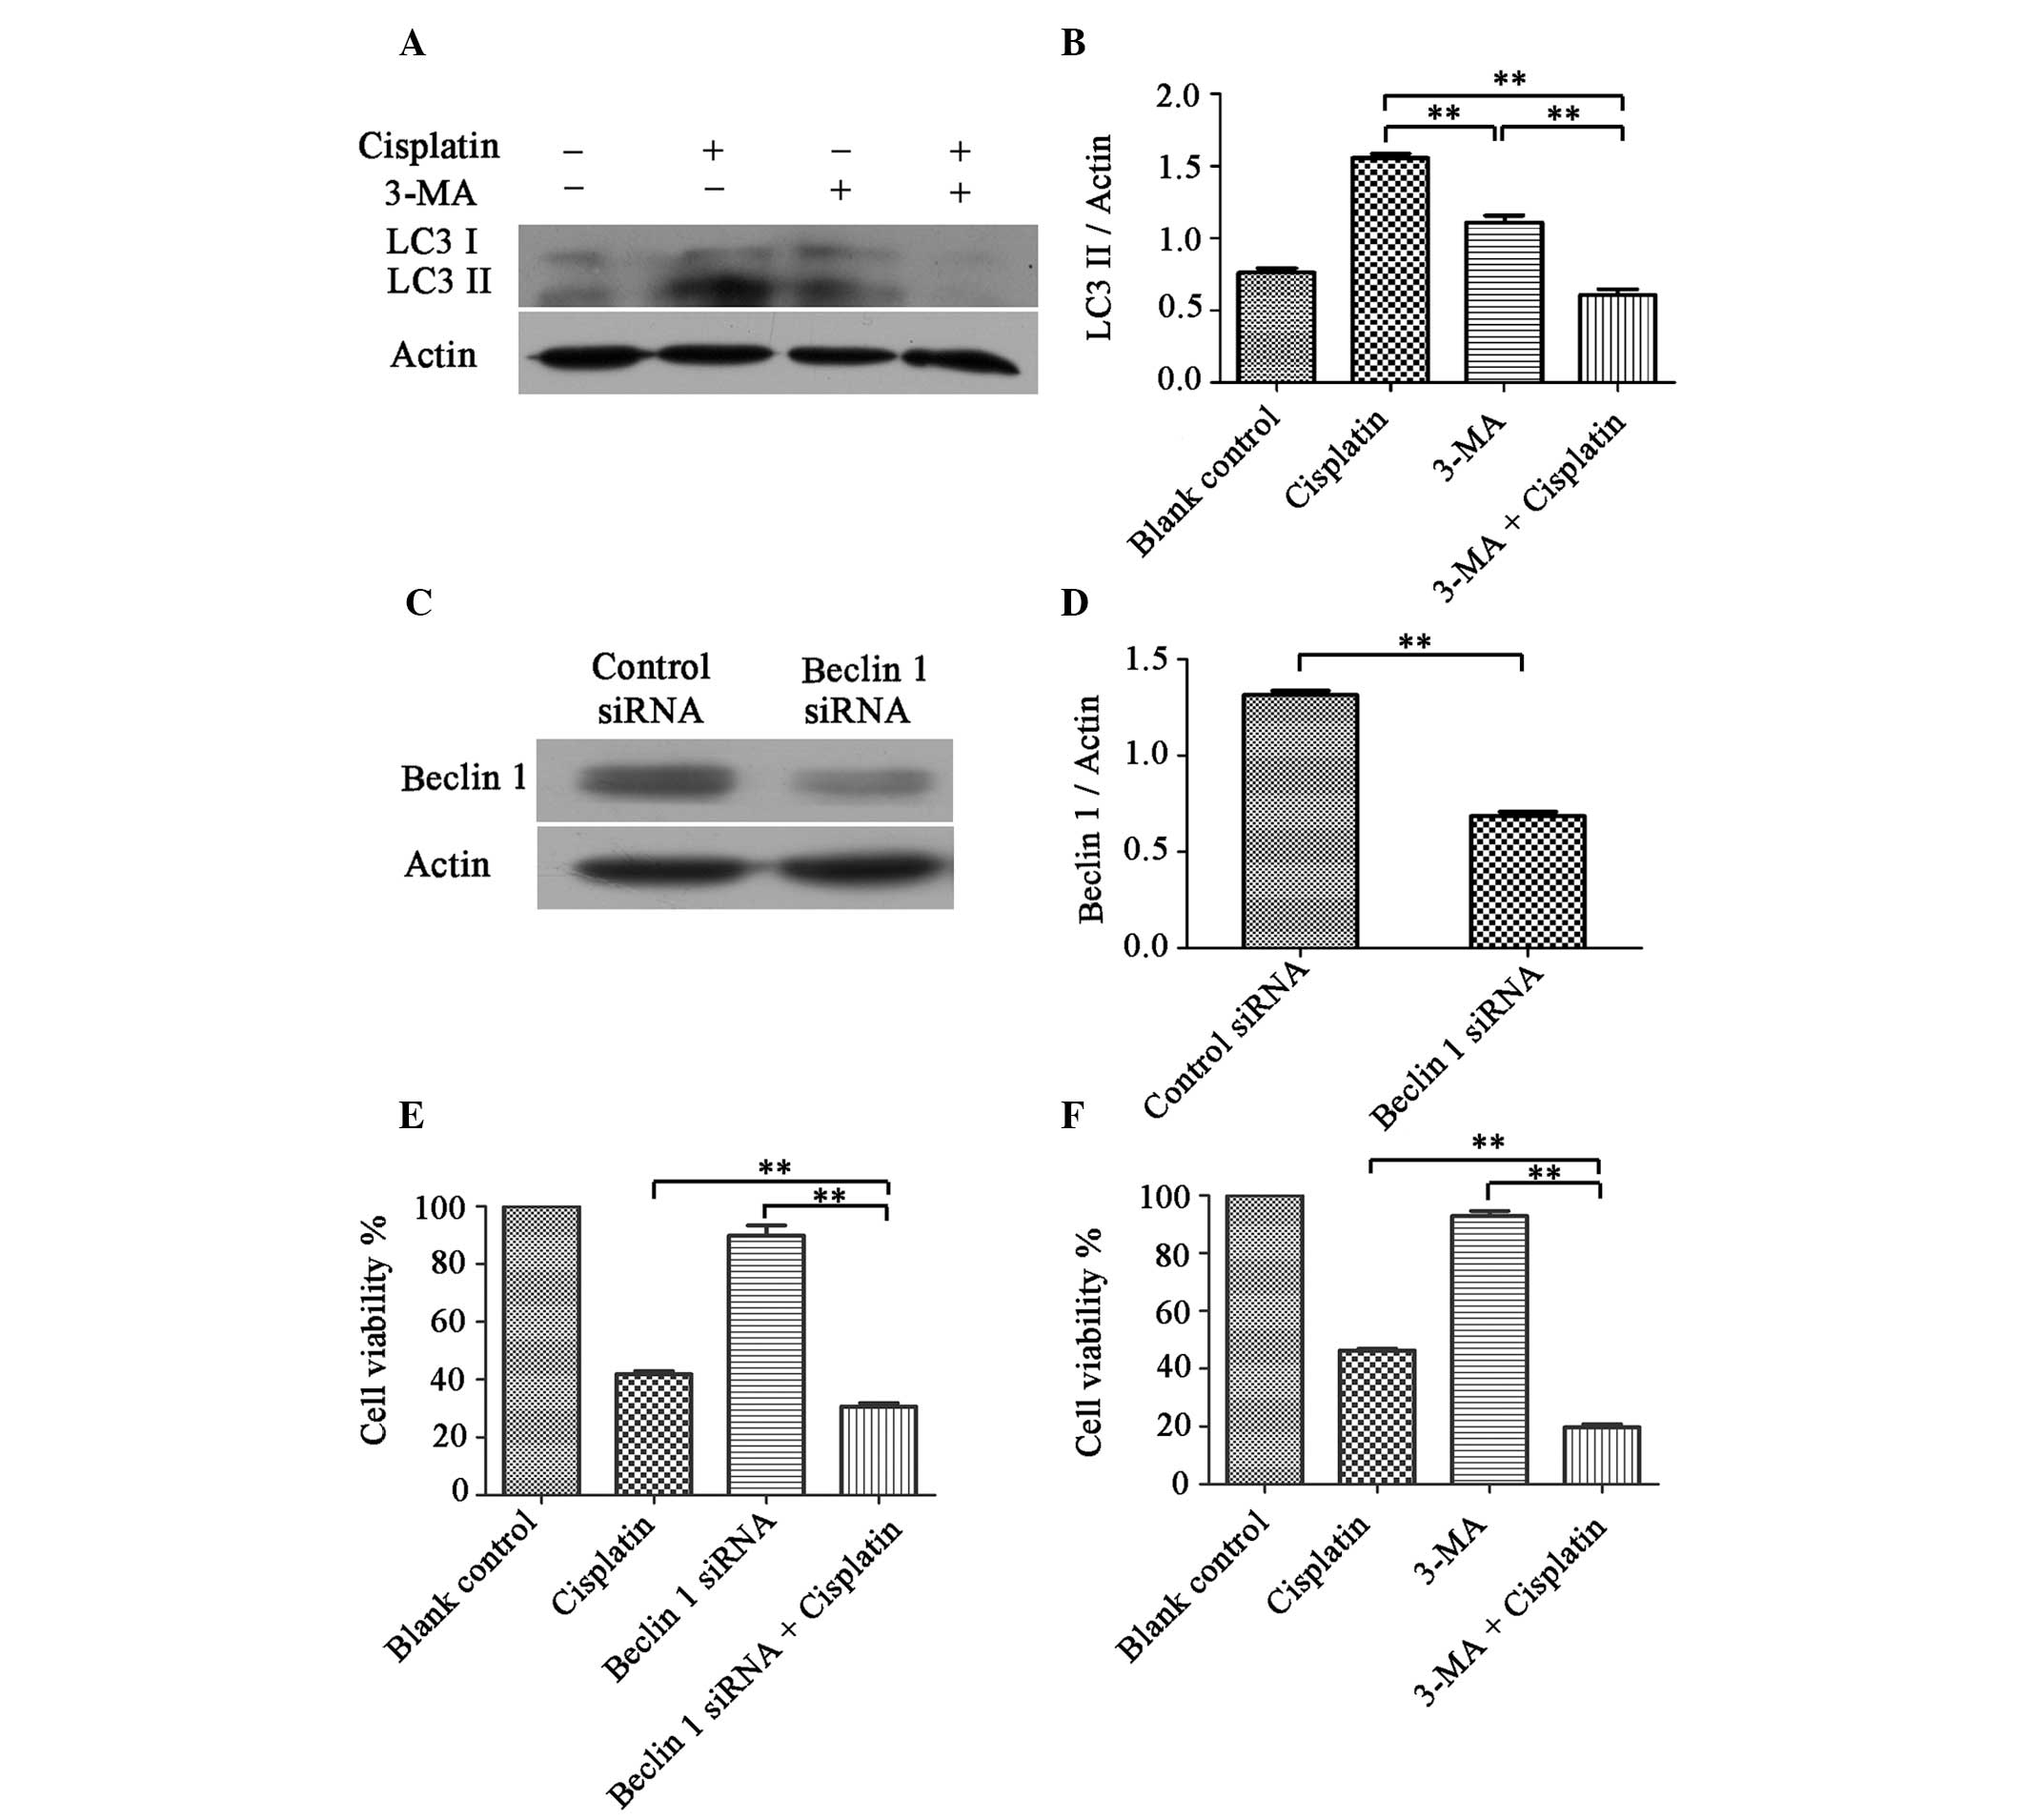 Induction Of Autophagy Contributes To Cisplatin Resistance In Human Ovarian Cancer Cells